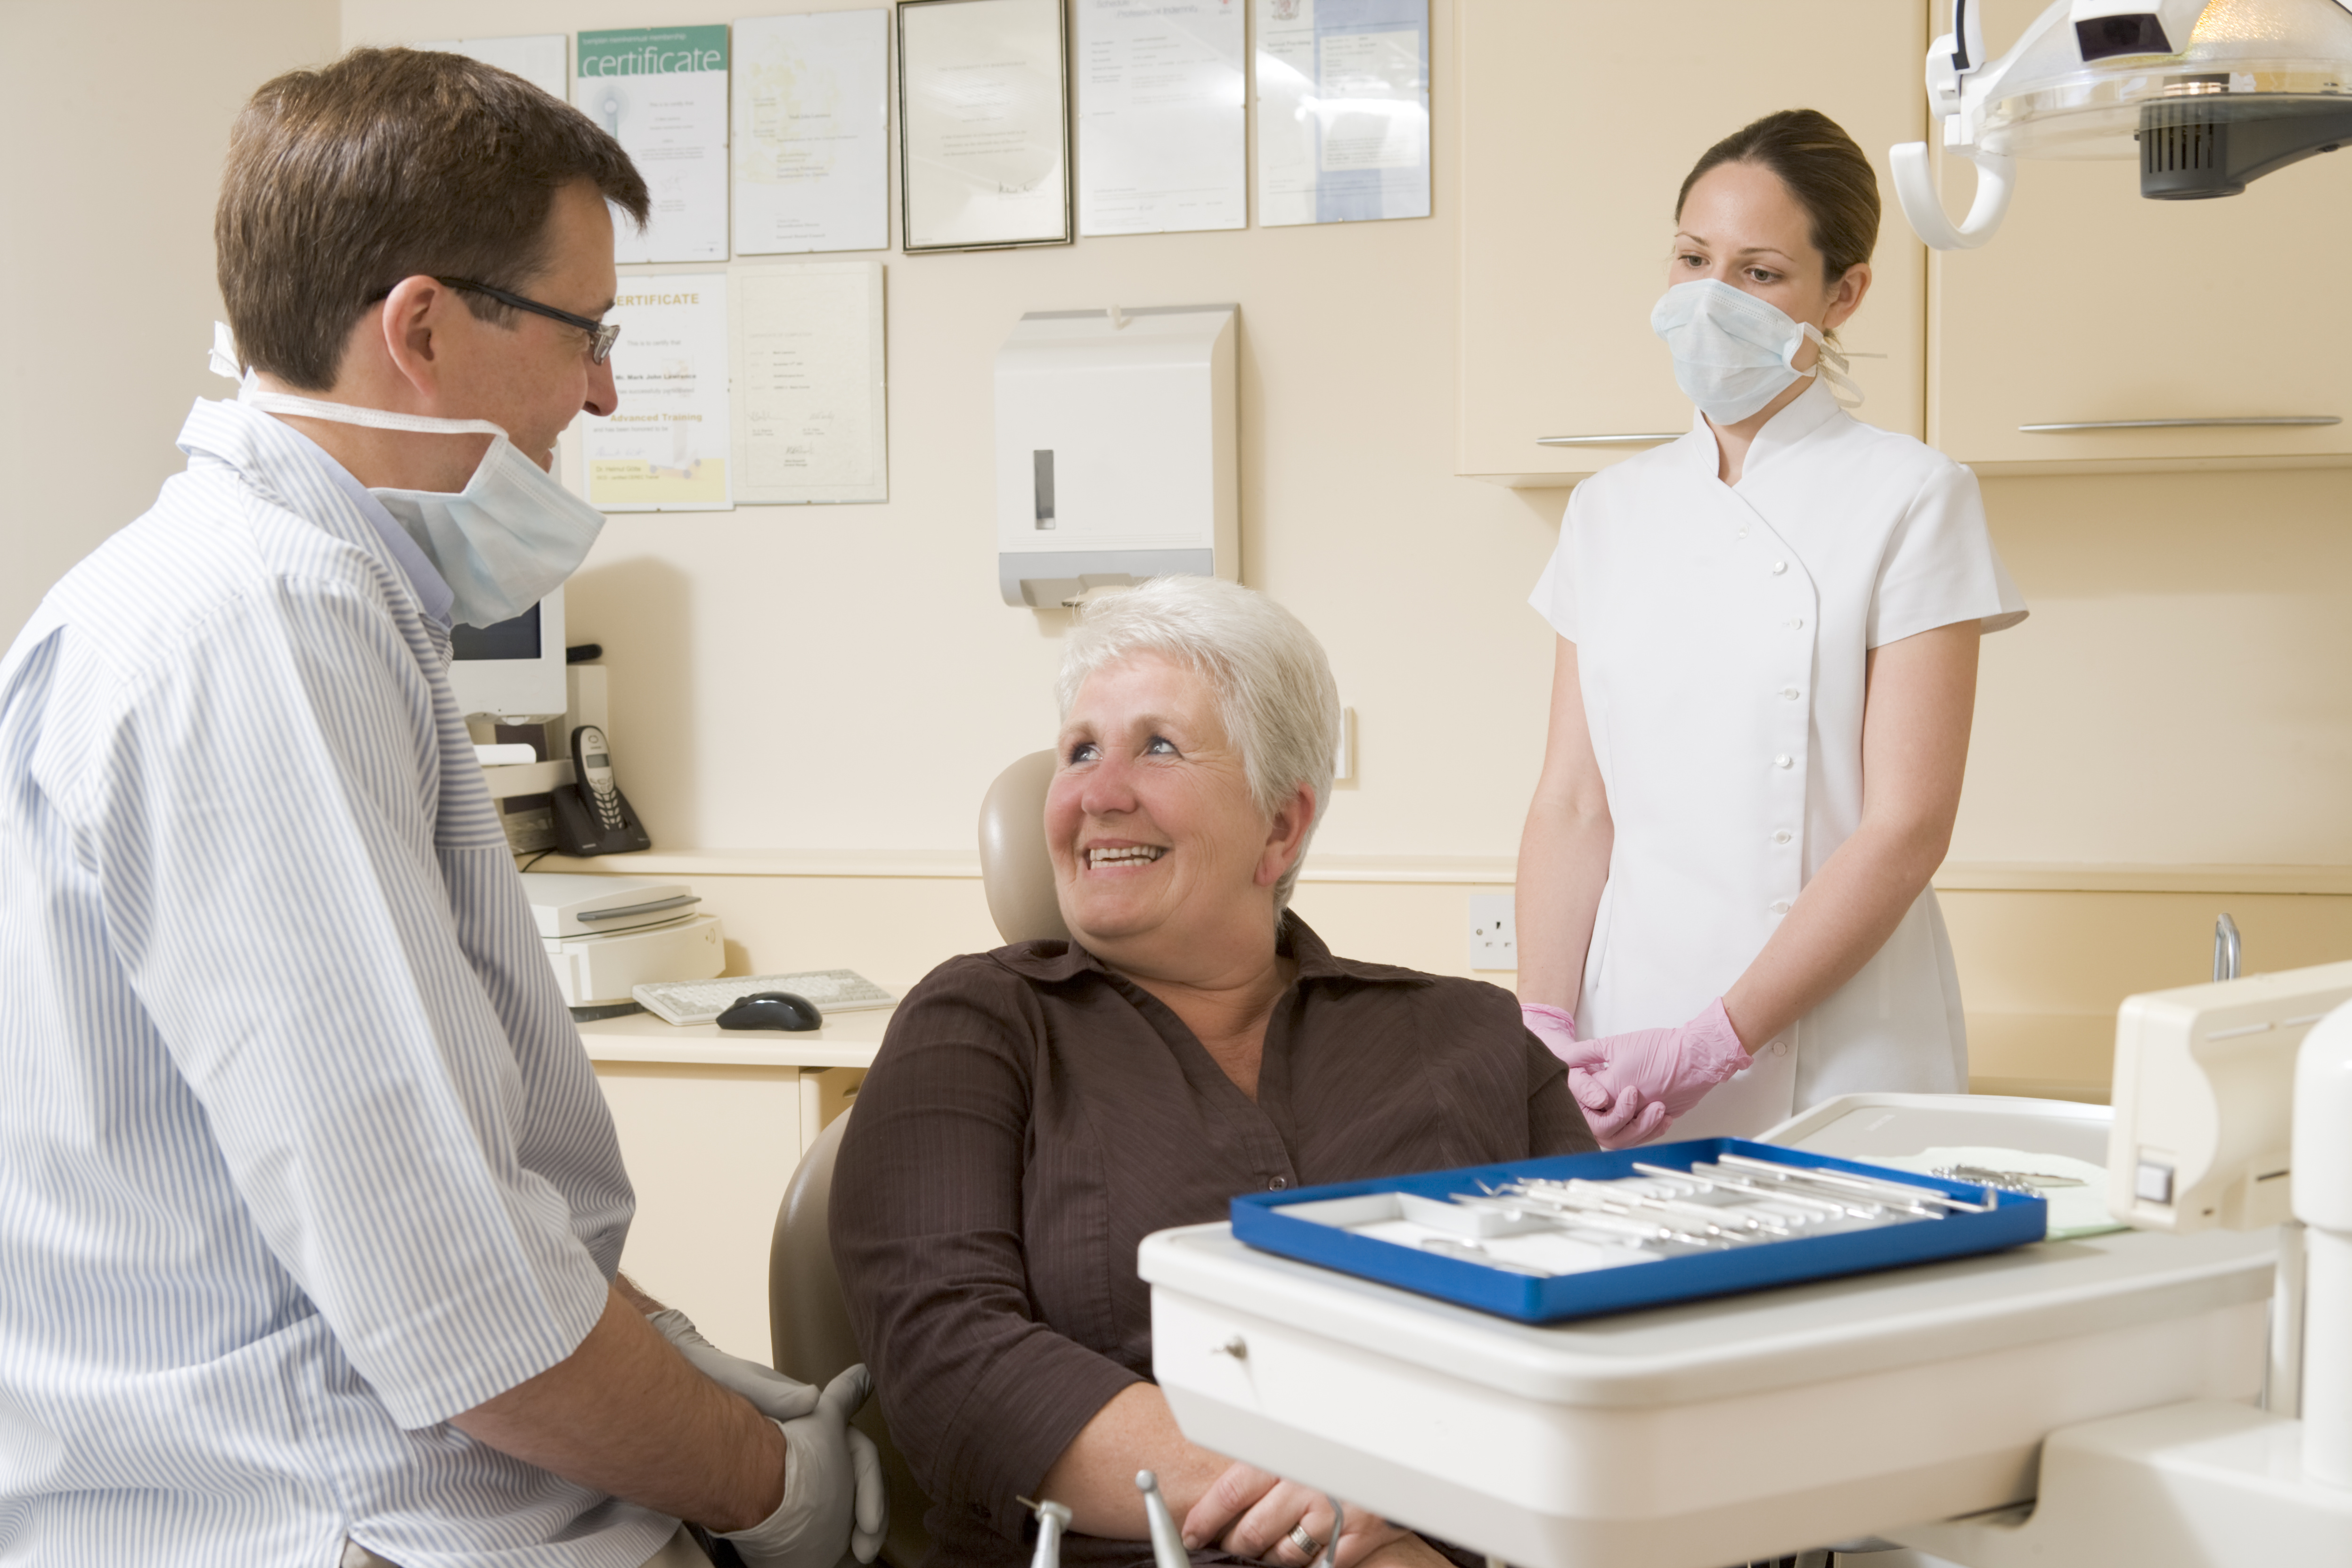 Dentist and assistant in exam room with woman